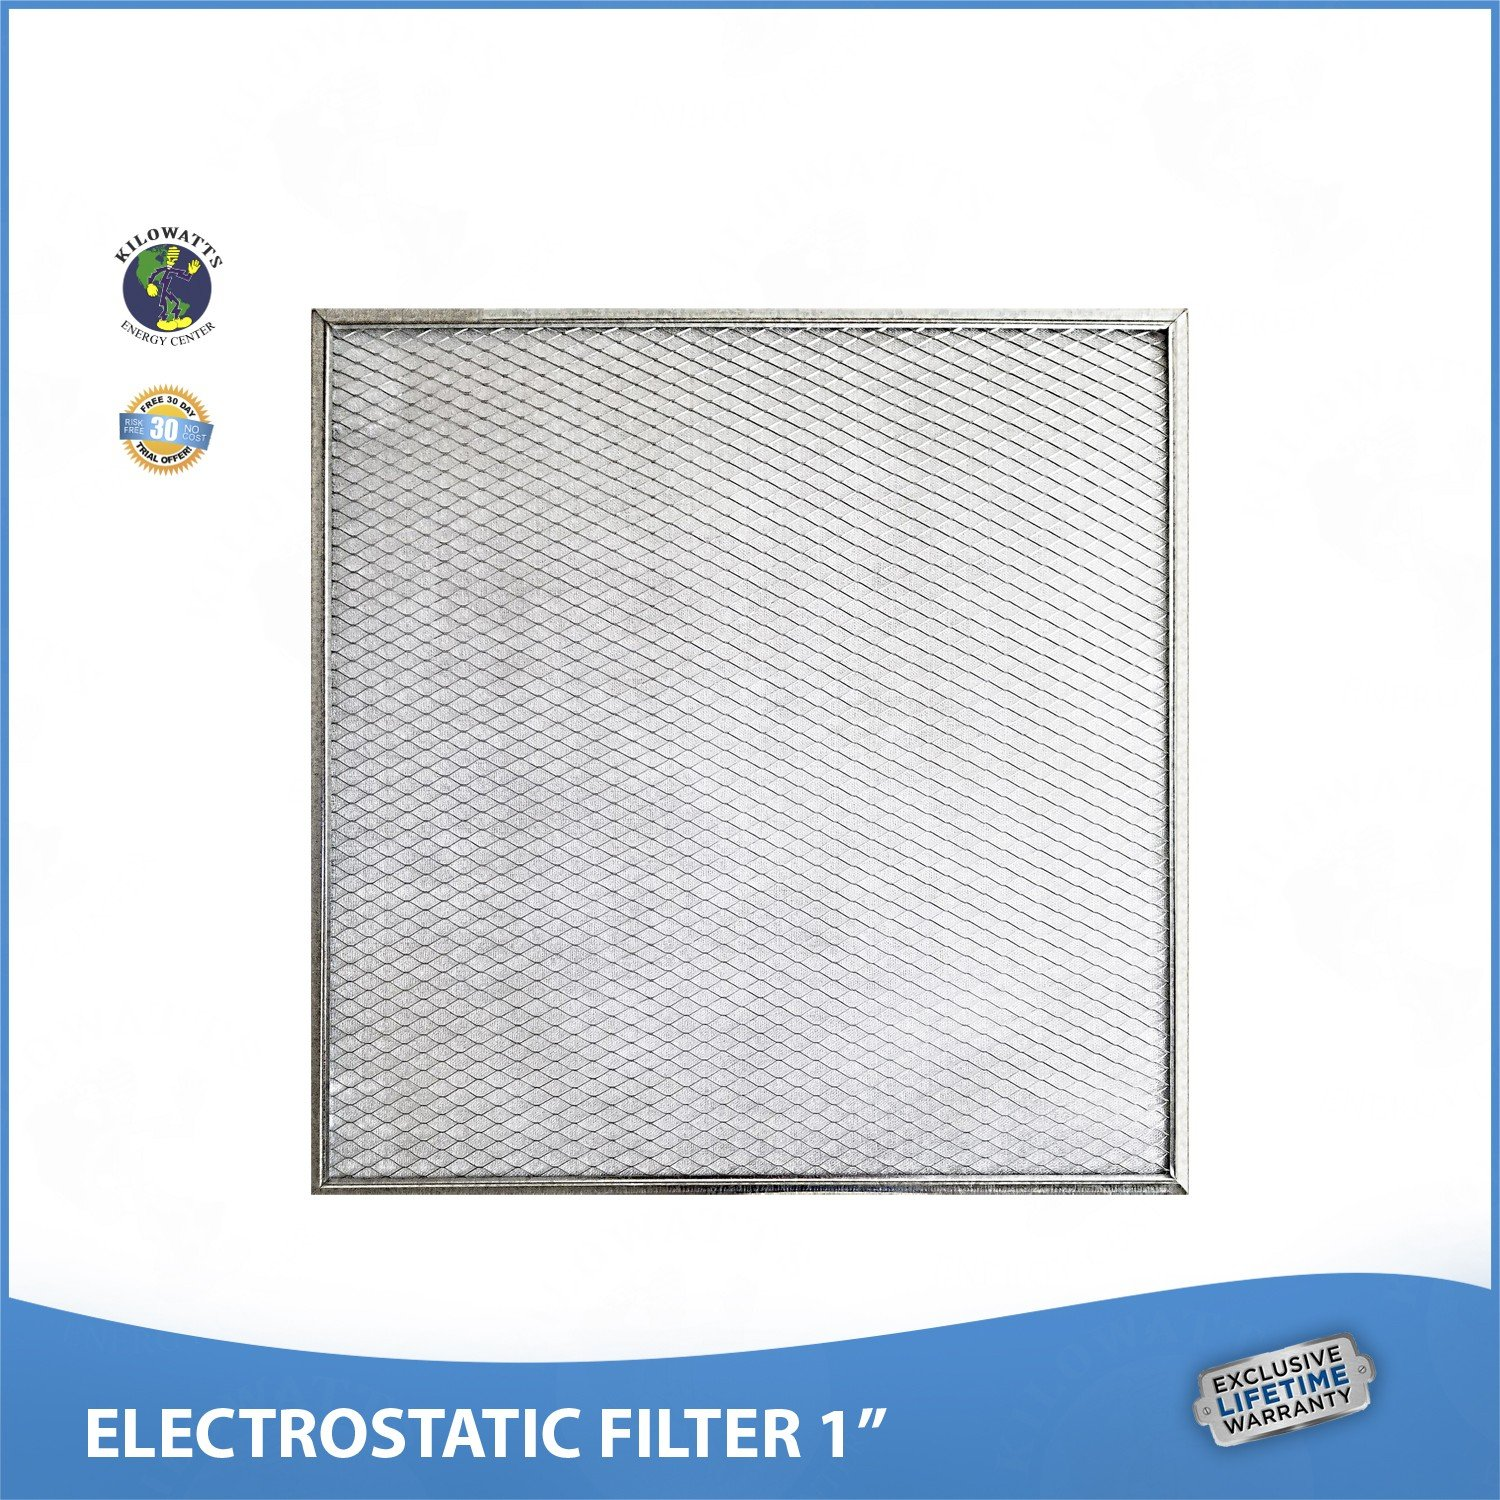 20x30x1 Lifetime Air Filter - Electrostatic Washable Permanent A/C Silver Steel Frame 65% more efficiency